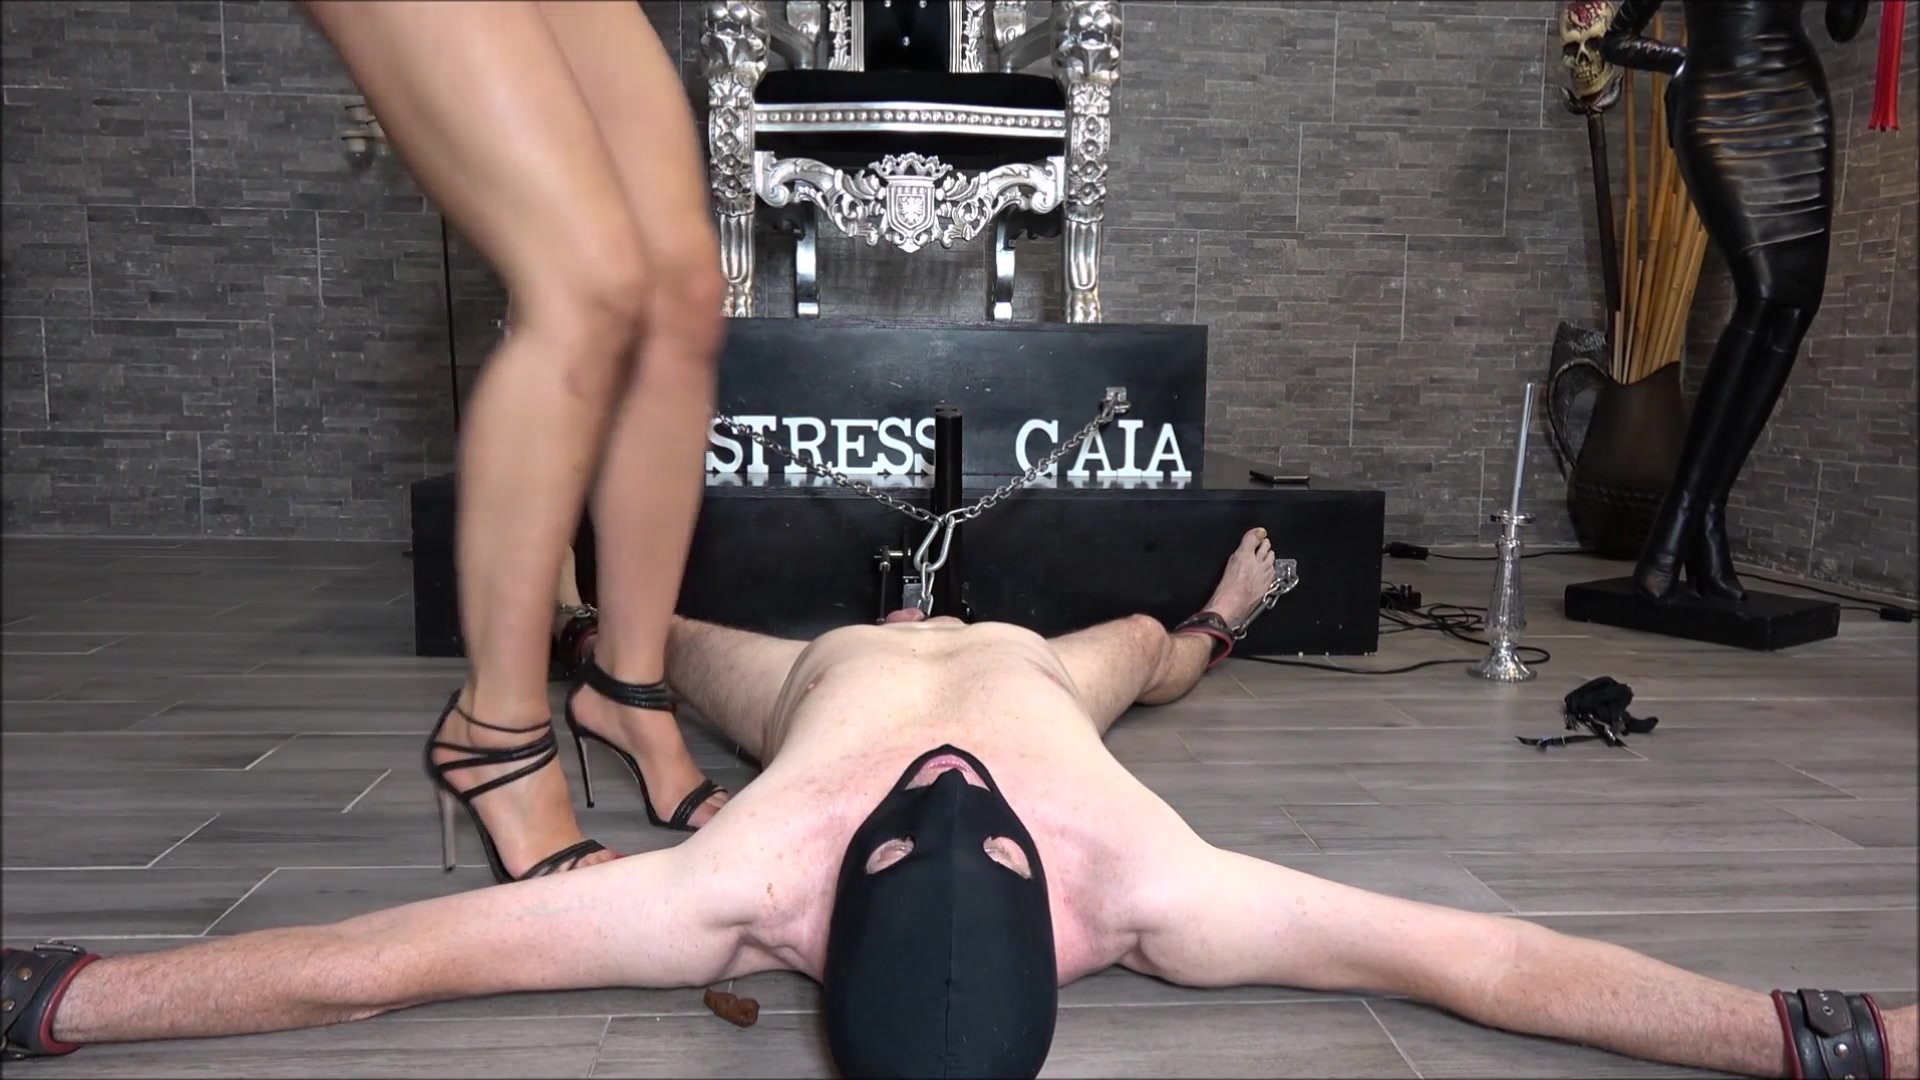 Mistress_Gaia_-_Eating_shit_for_punishment.00000.jpg